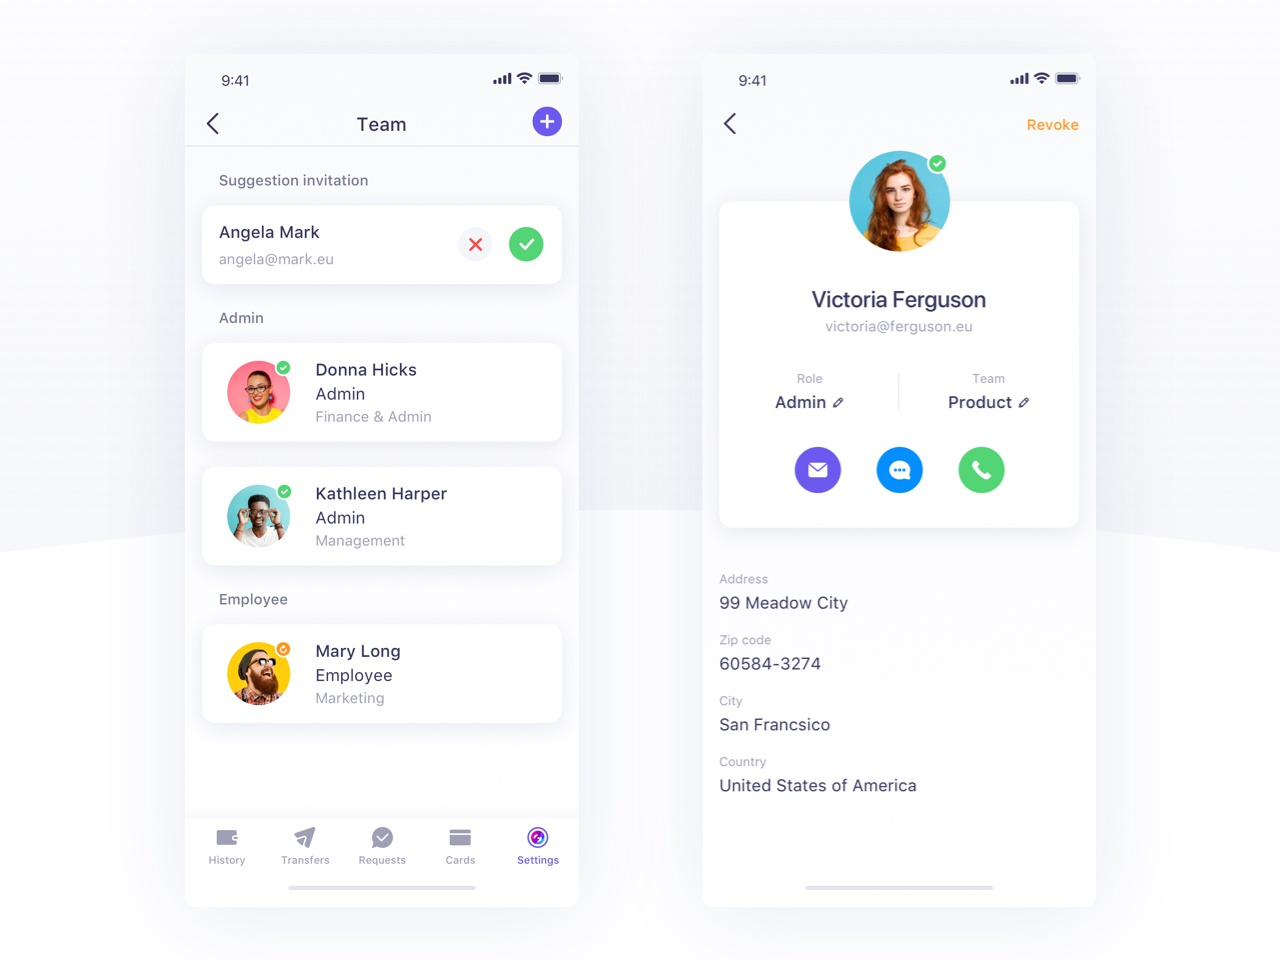 Team Section  - Qonto design ui mobile app iphonex ios mobile mobile app design invitation settings adress bank contact list contact card profile role phone contact team status member